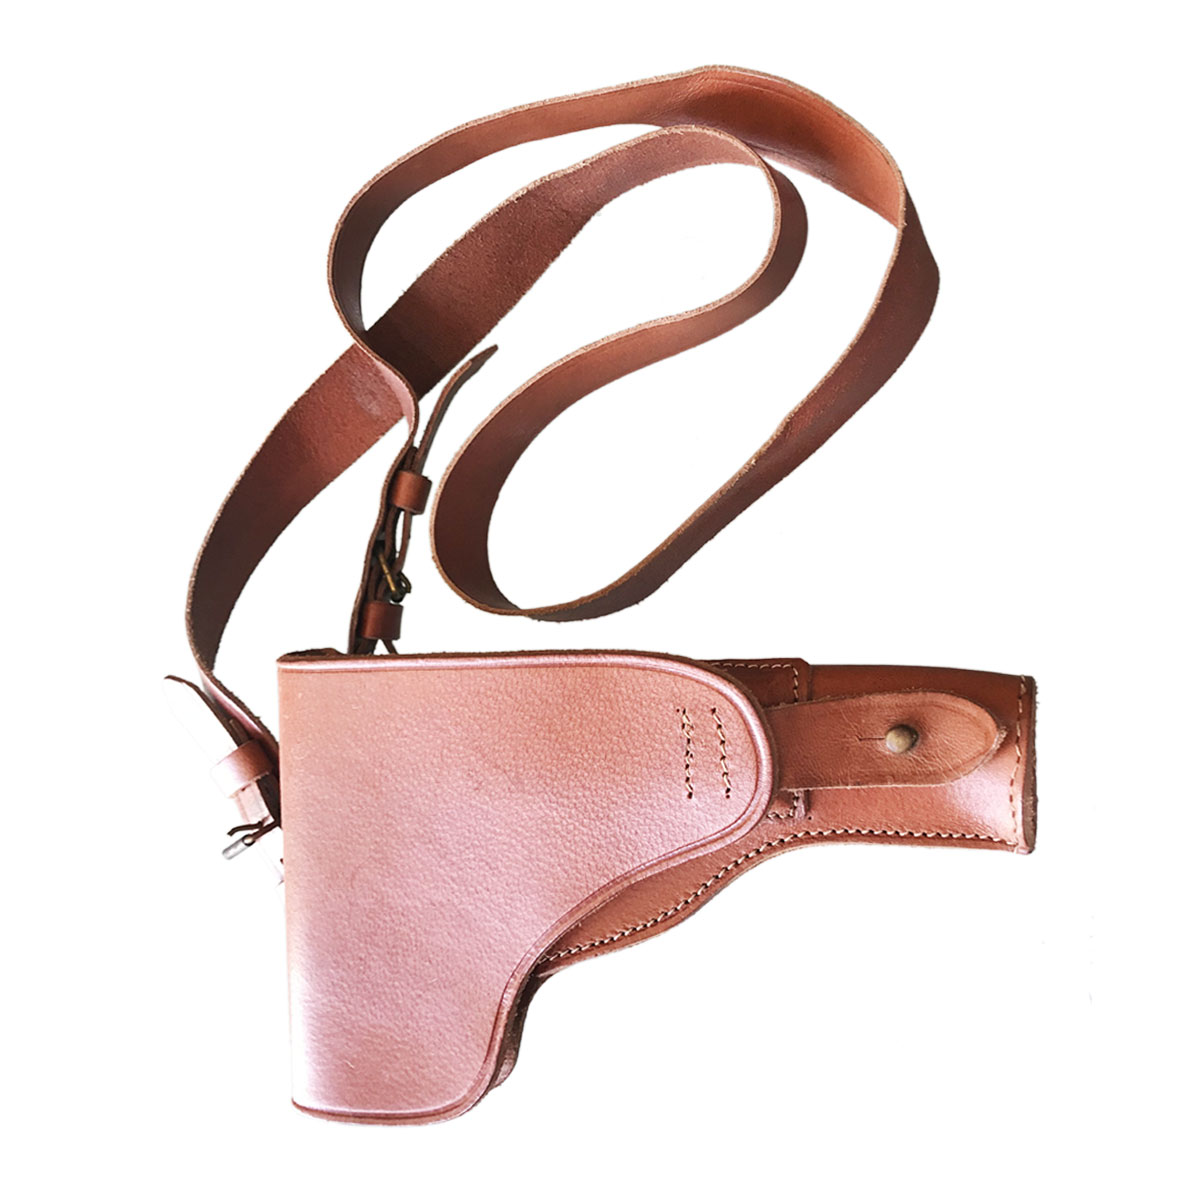 BROWN COWBOY HOLSTER FOR SHORT GUN